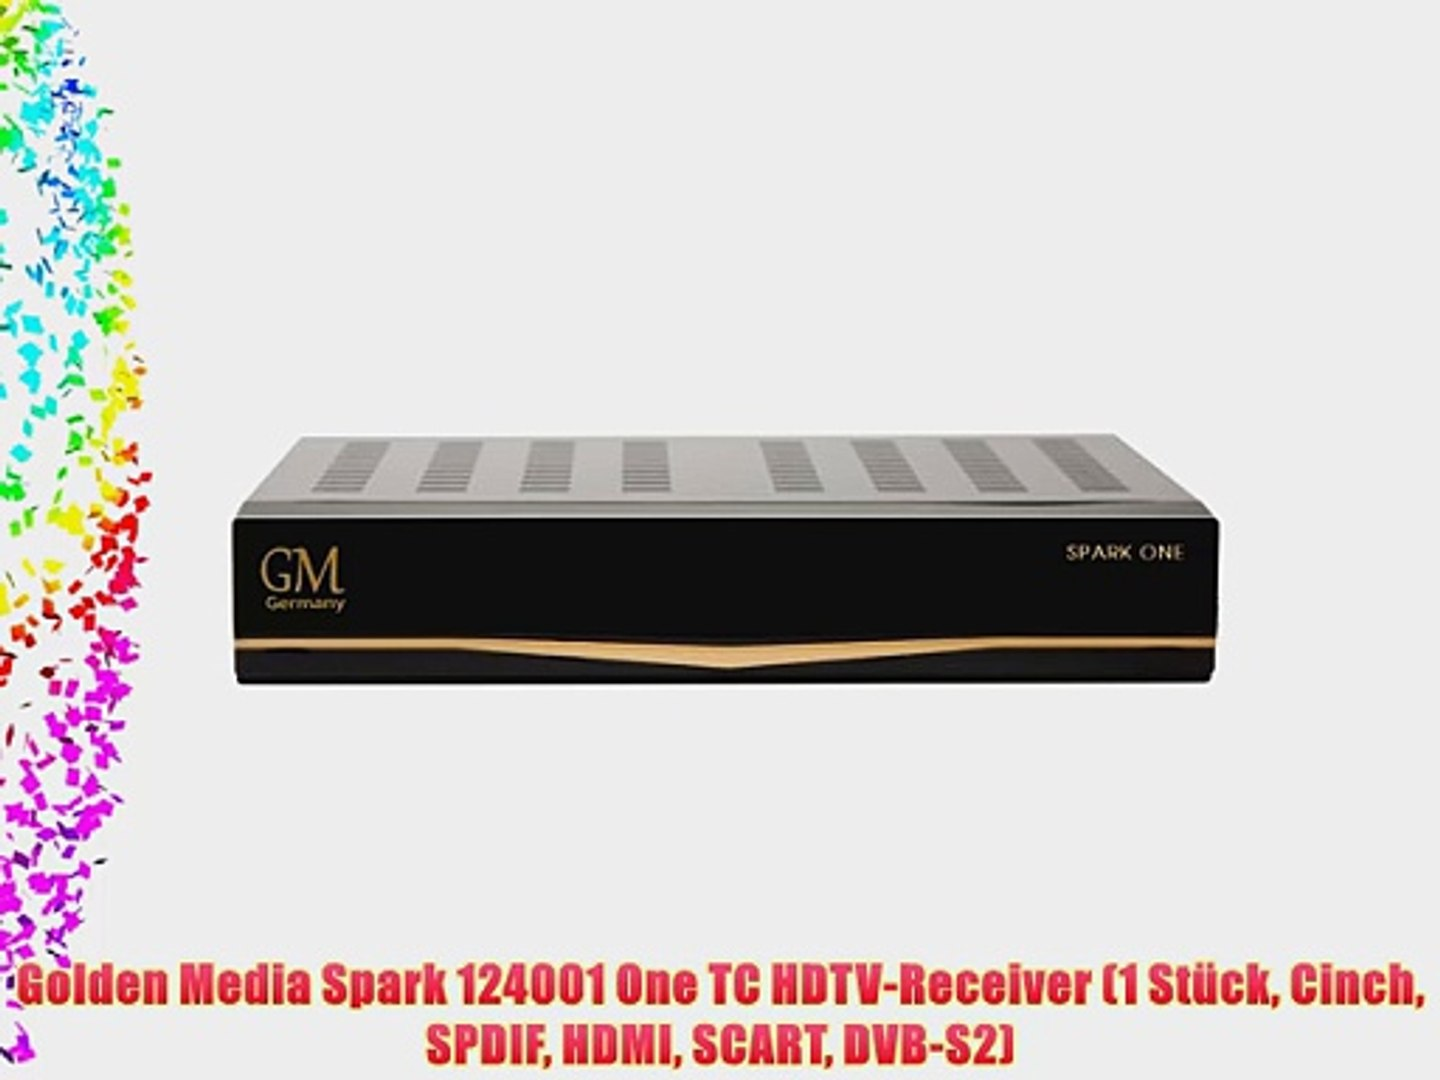 Golden Media Spark 124001 One TC HDTV-Receiver (1 St?ck Cinch SPDIF HDMI  SCART DVB-S2)